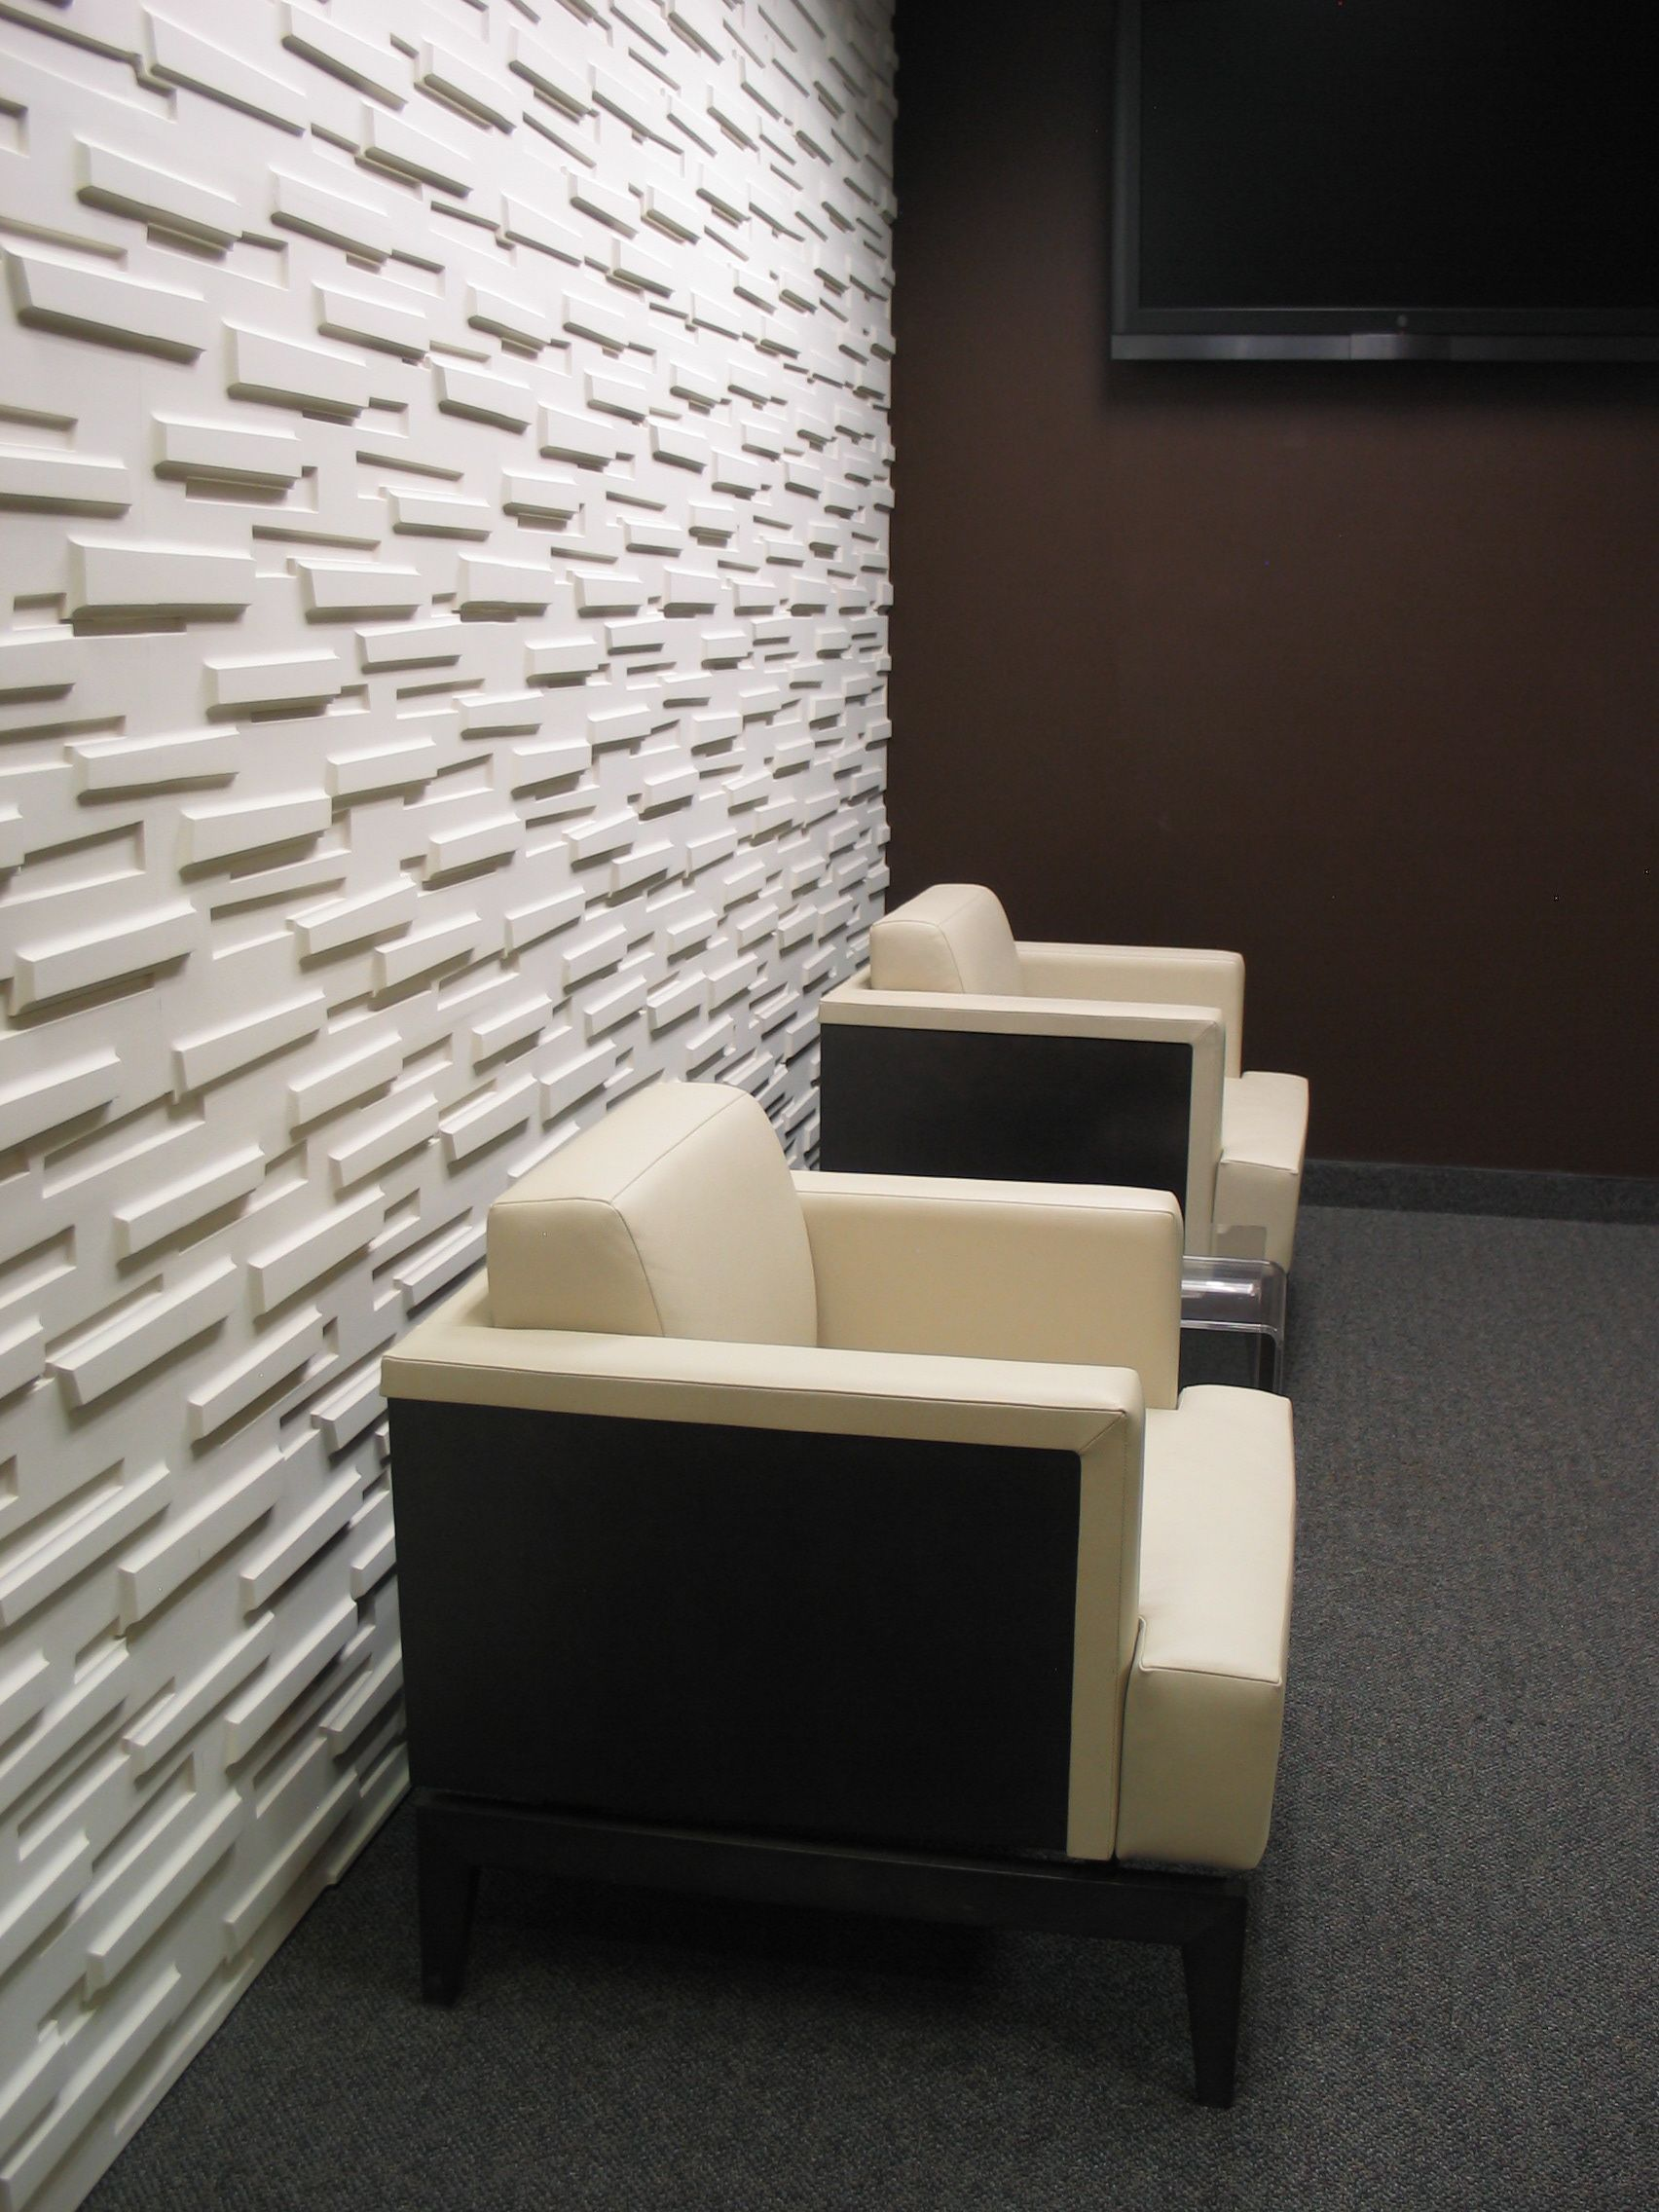 Superb Textured Wall  Element Of Design Texture